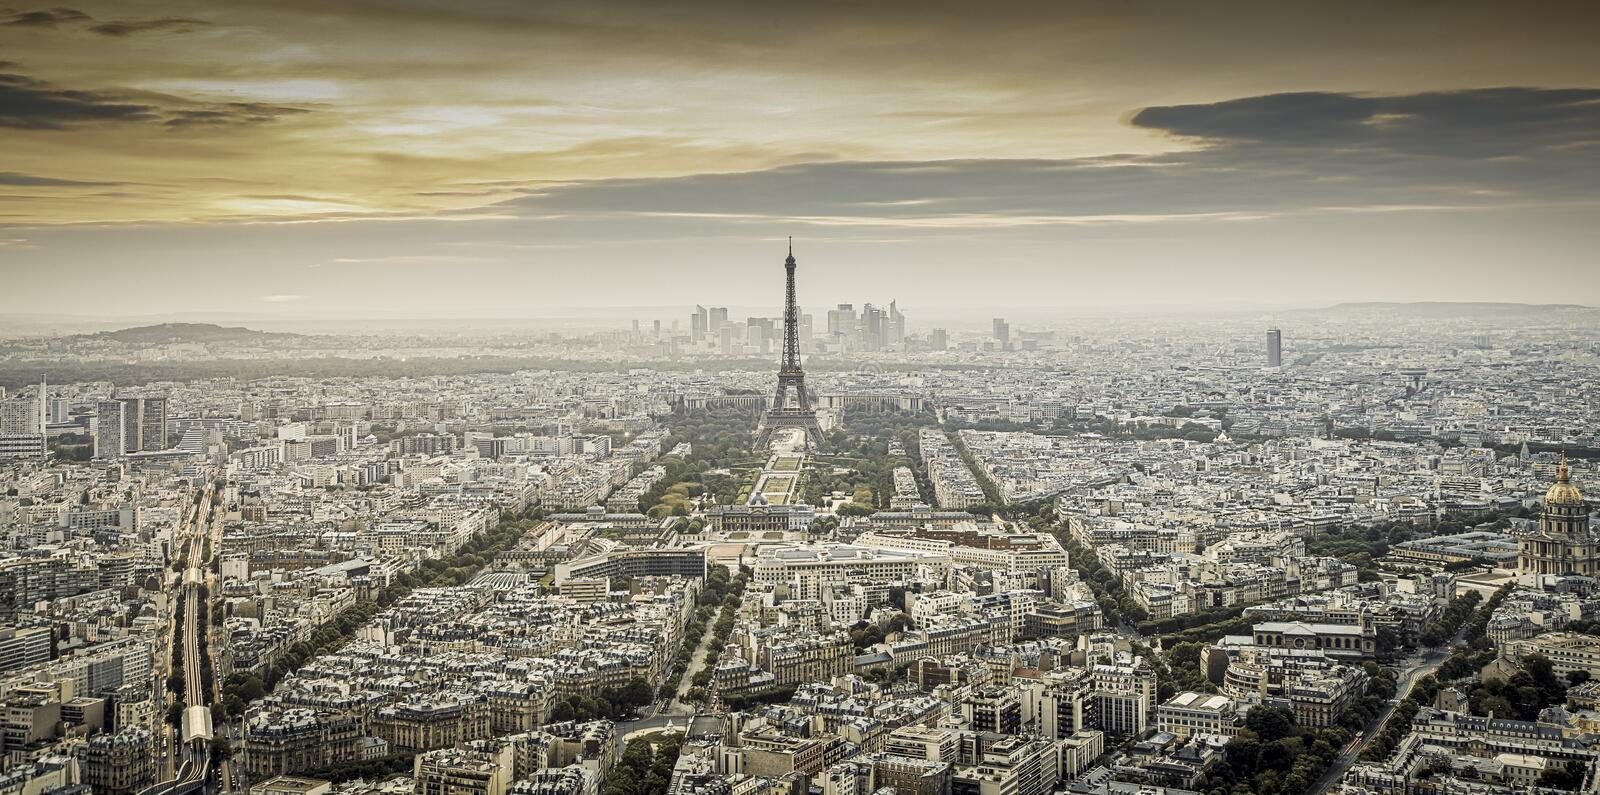 aerial view over Paris at sunset with iconic Eiffel tower royalty free stock images